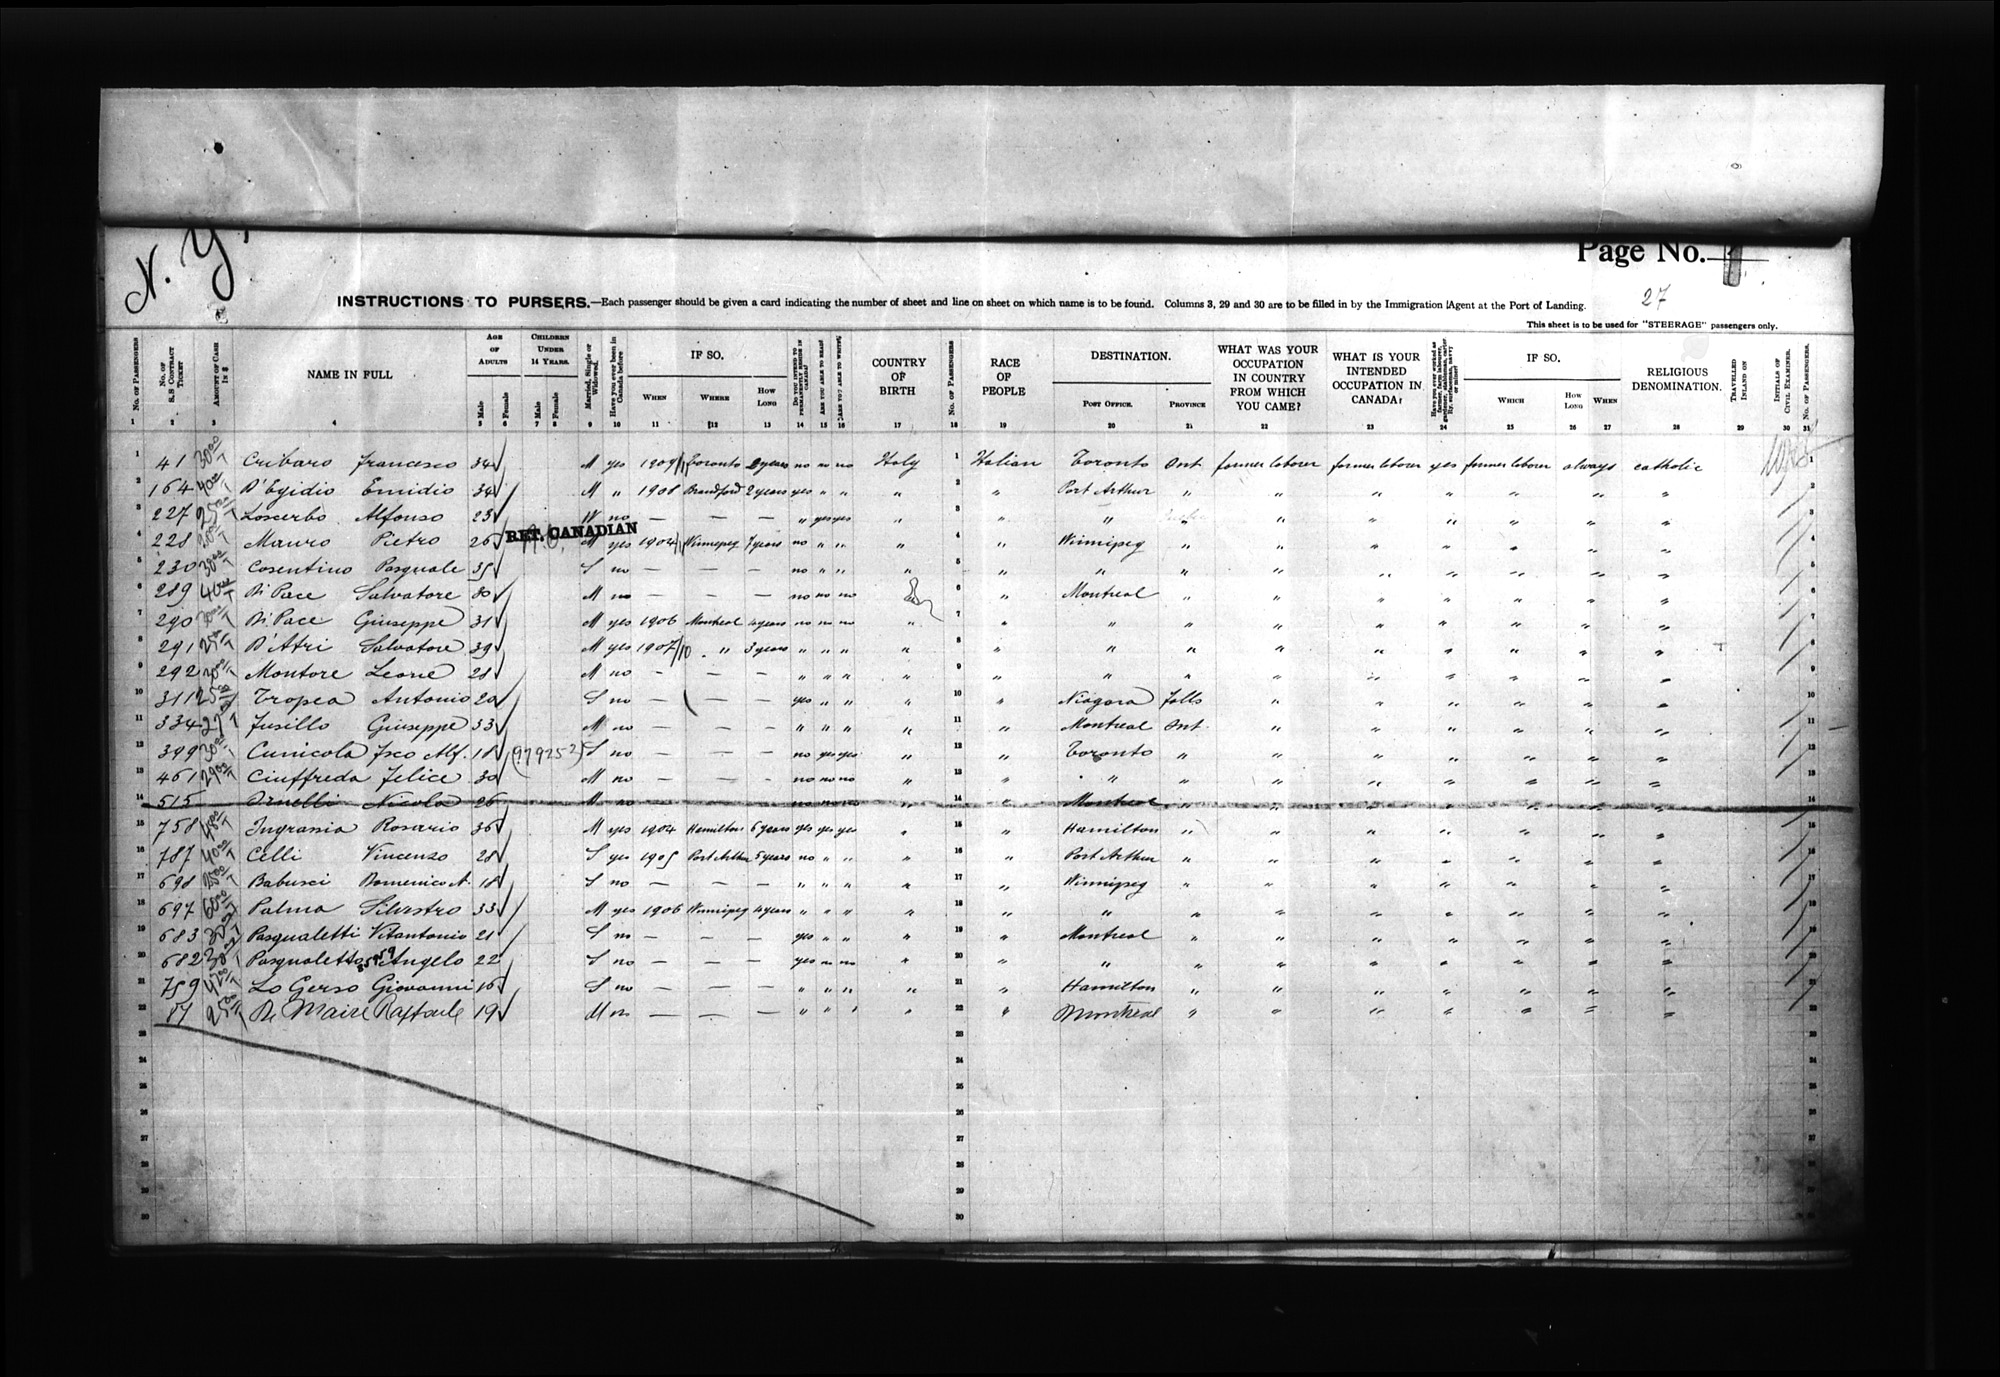 Item: Passenger lists of the VENEZIA arriving in New York